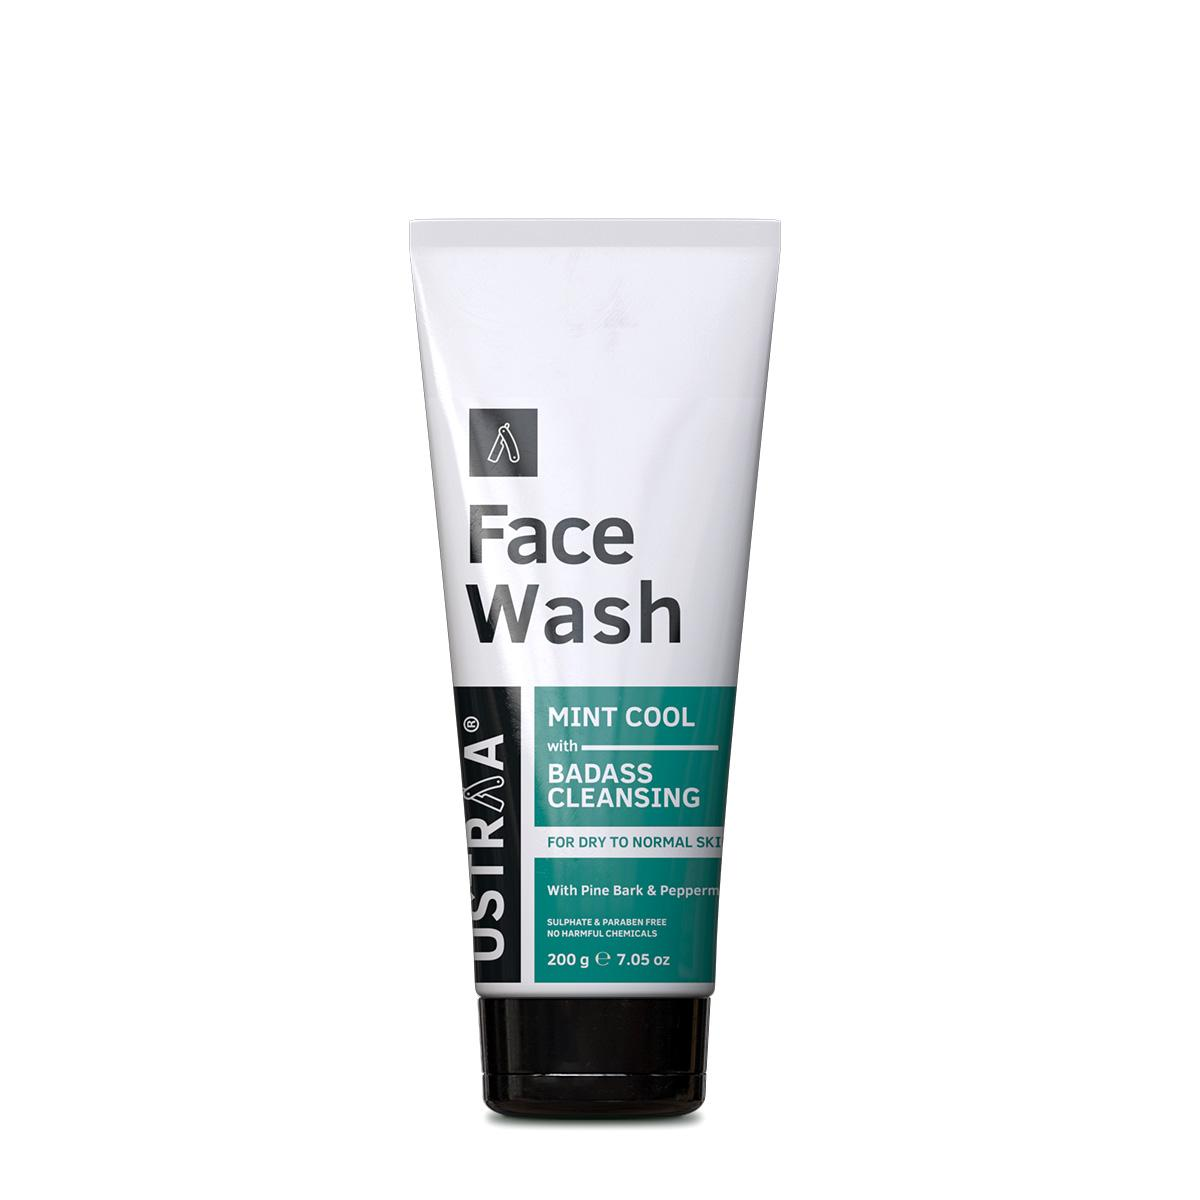 Ustraa Mint Cool Face Wash 200 g - For Dry Skin, With Peppermint, Glycerine and Coconut Derivatives for Intense Moisturization